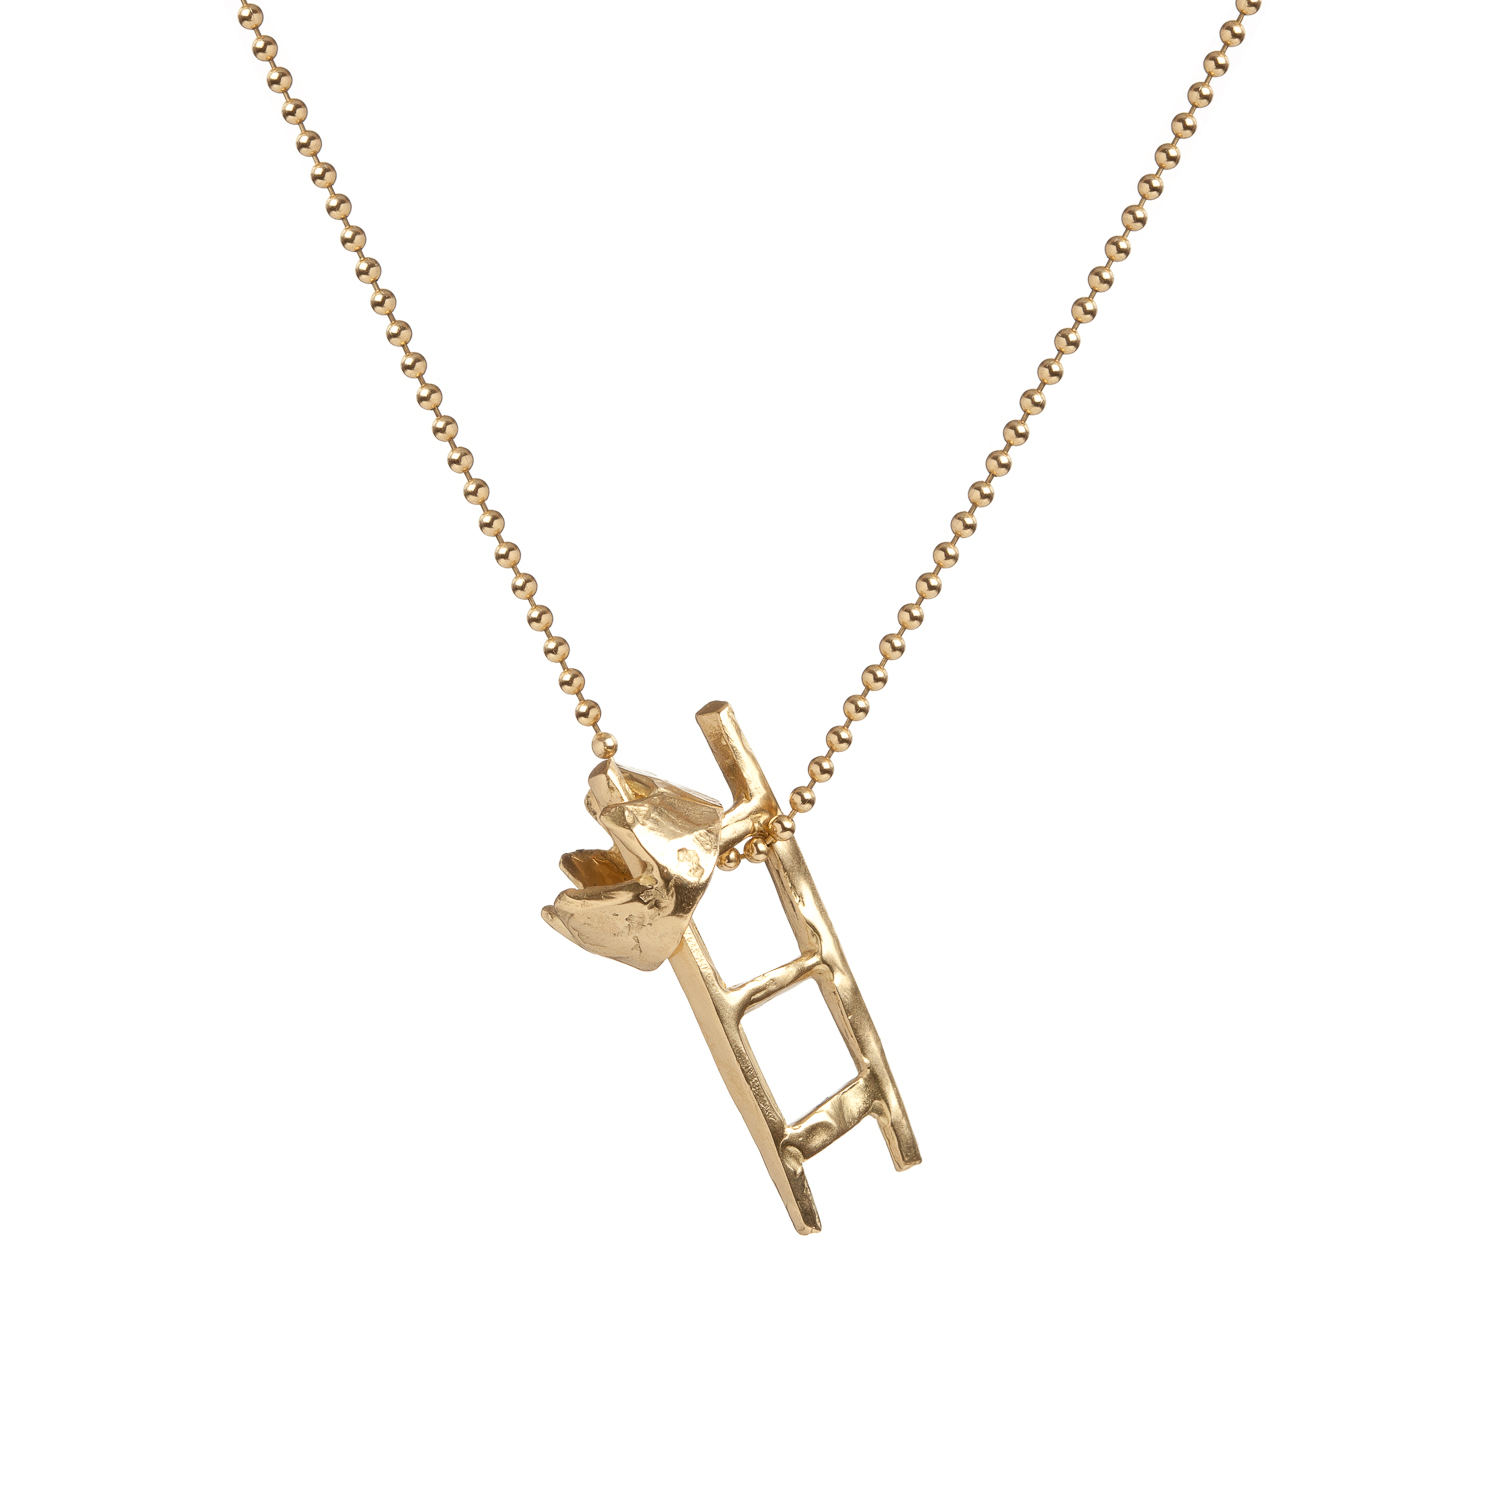 Ladder and Crown | 18k gold